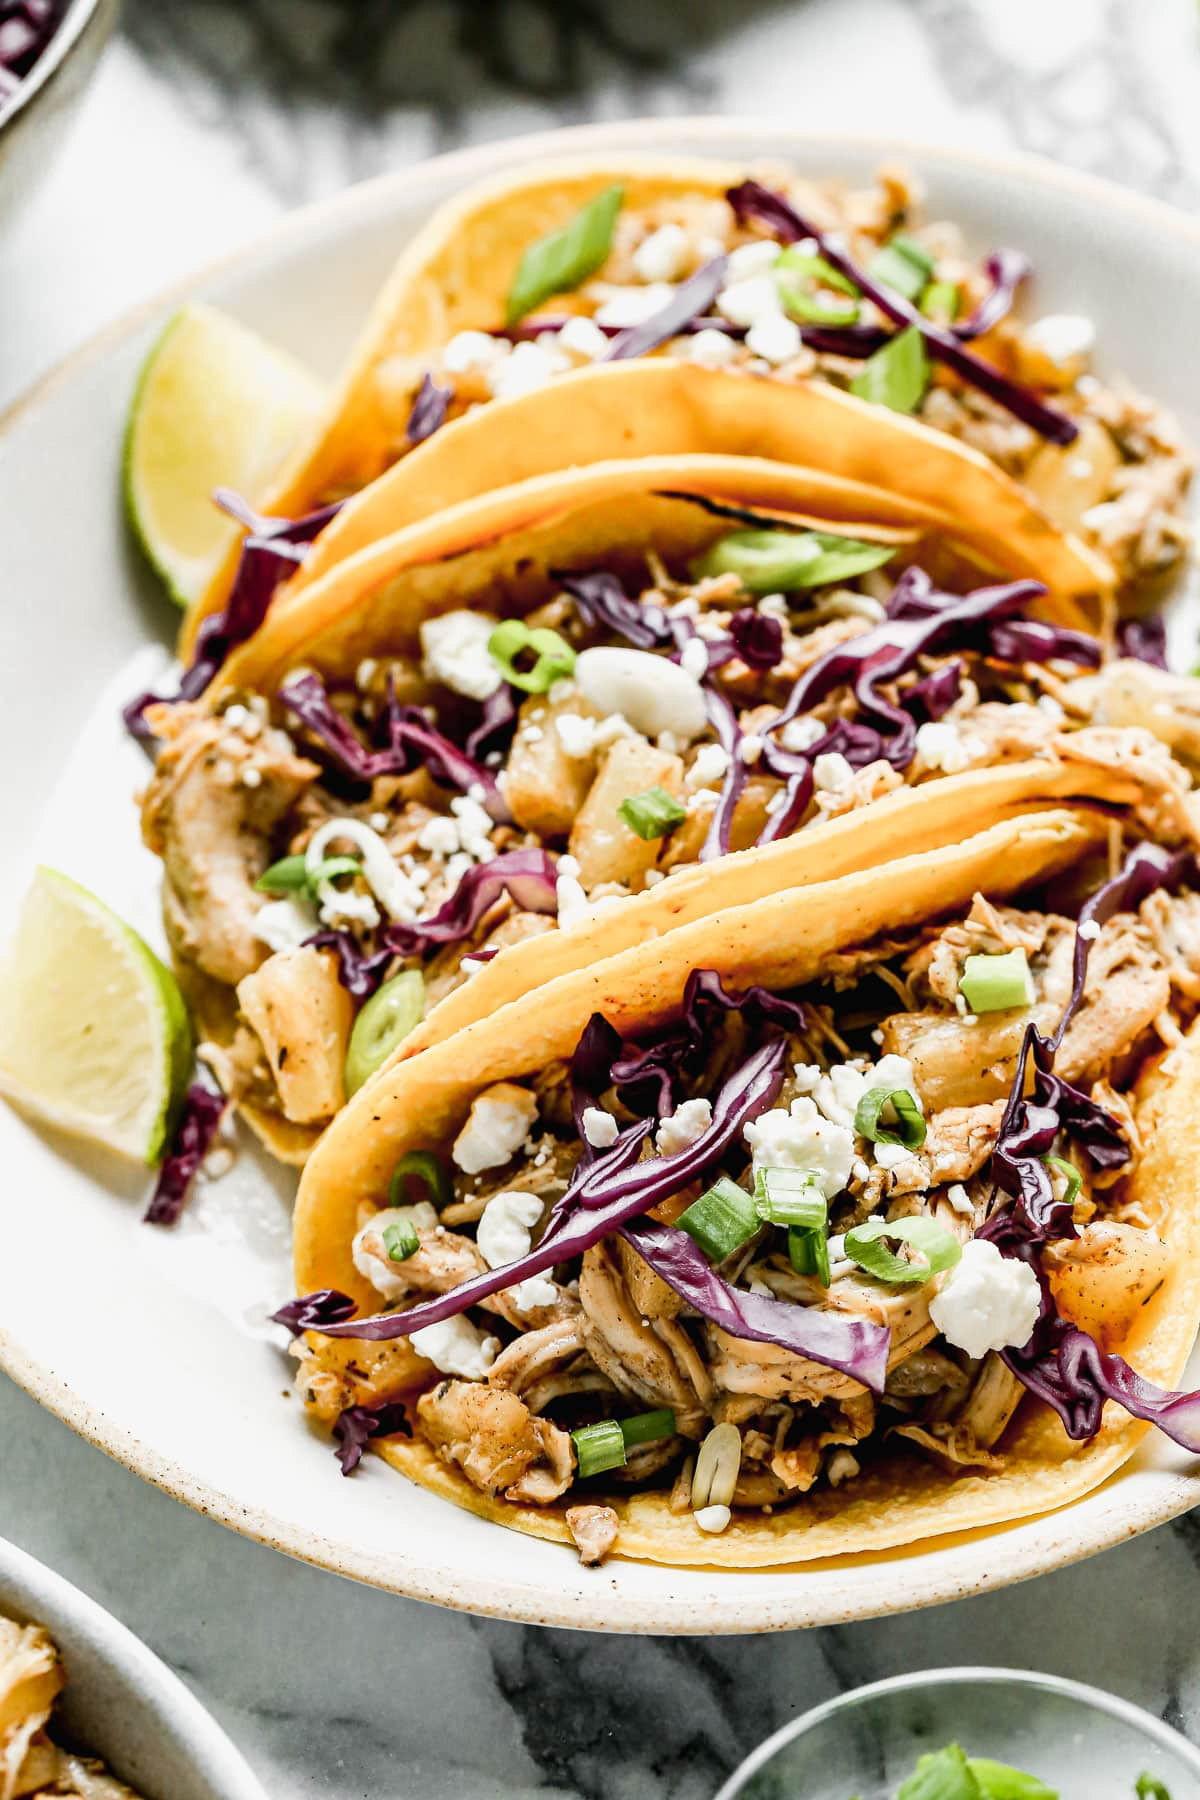 A plate of jerk chicken tacos with lime